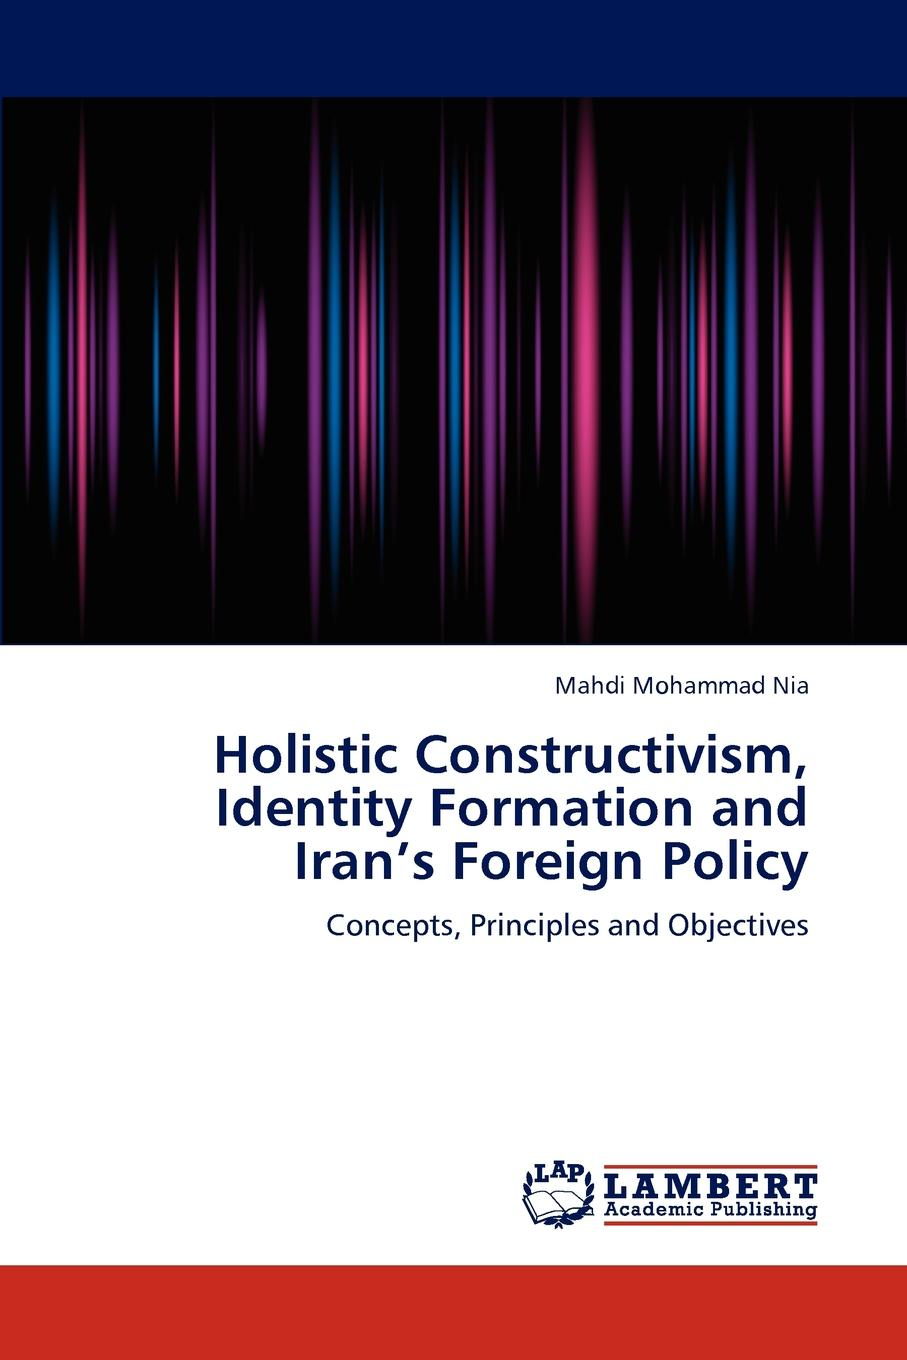 Mohammad Nia Mahdi Holistic Constructivism, Identity Formation and Iran.s Foreign Policy jeffrey lantis s us foreign policy in action an innovative teaching text